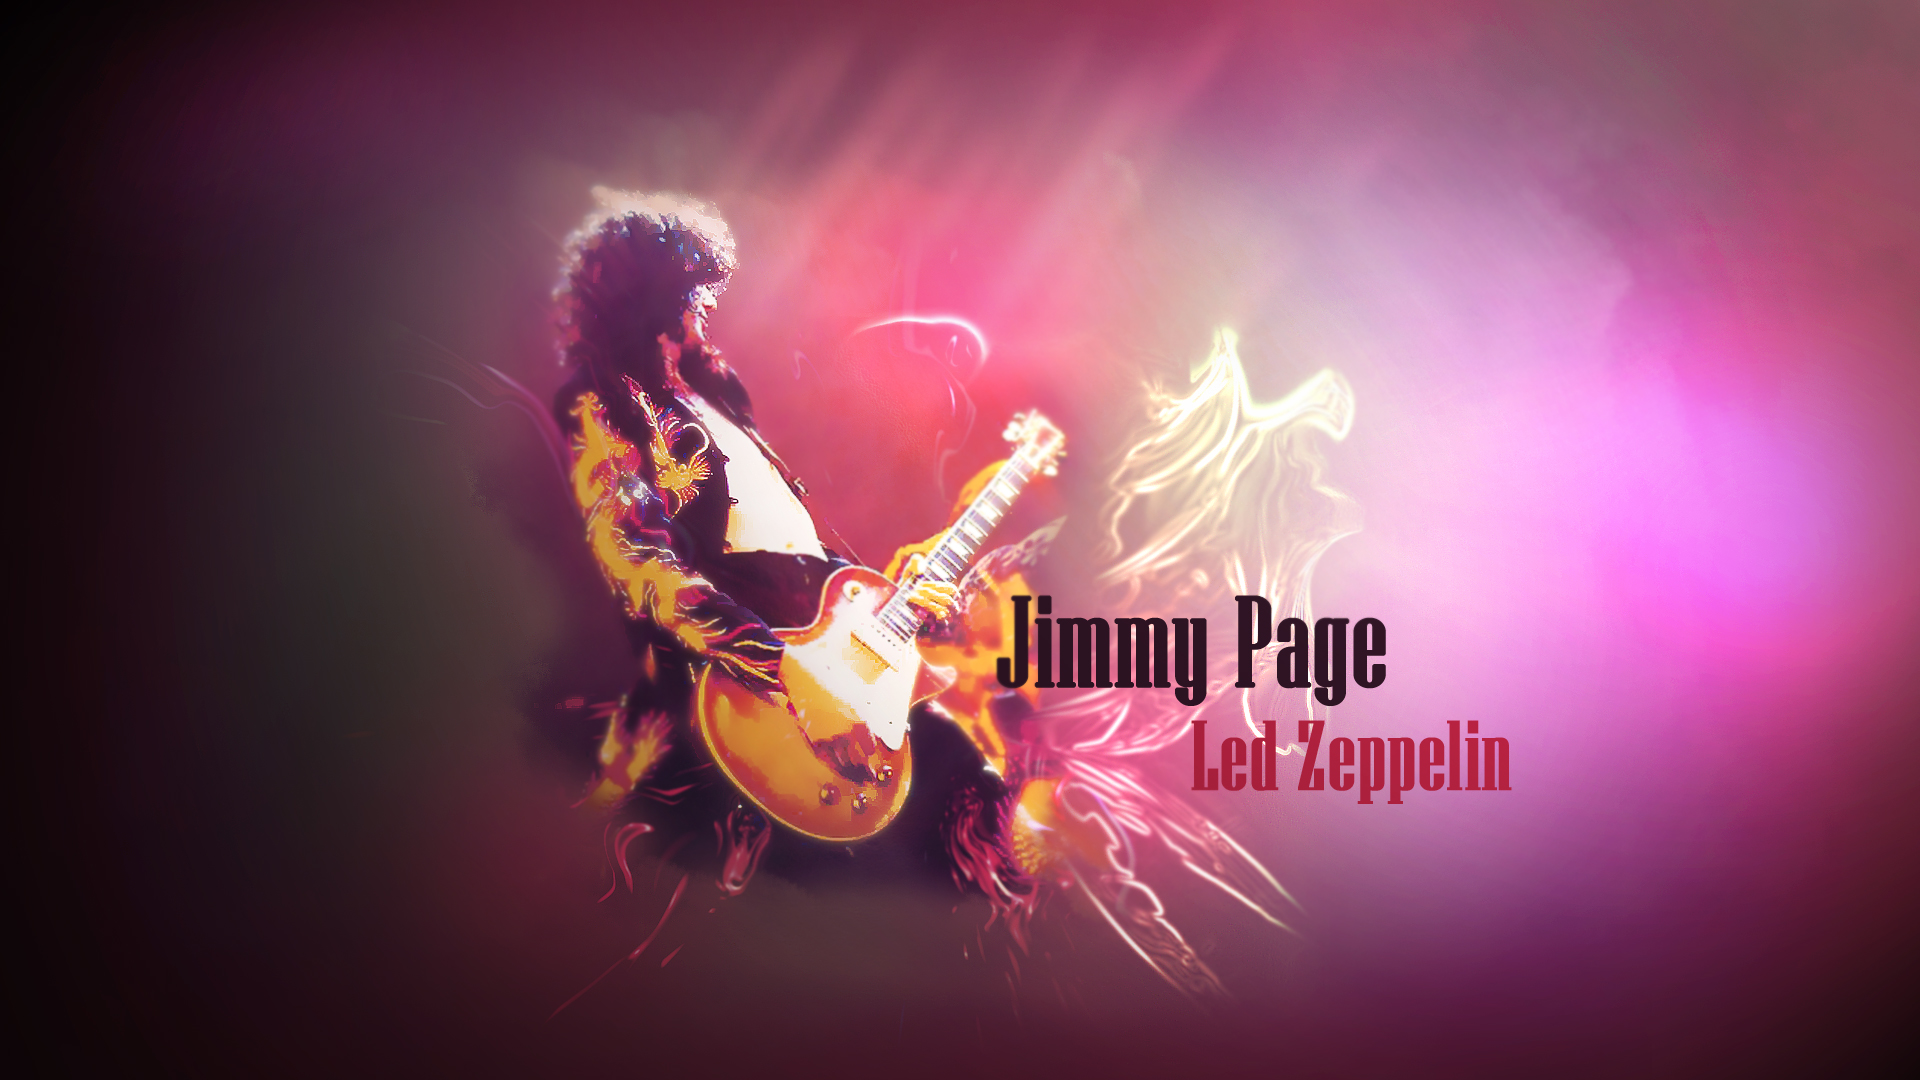 Jimmy Page images Jimmy Page HD wallpaper and background 1920x1080